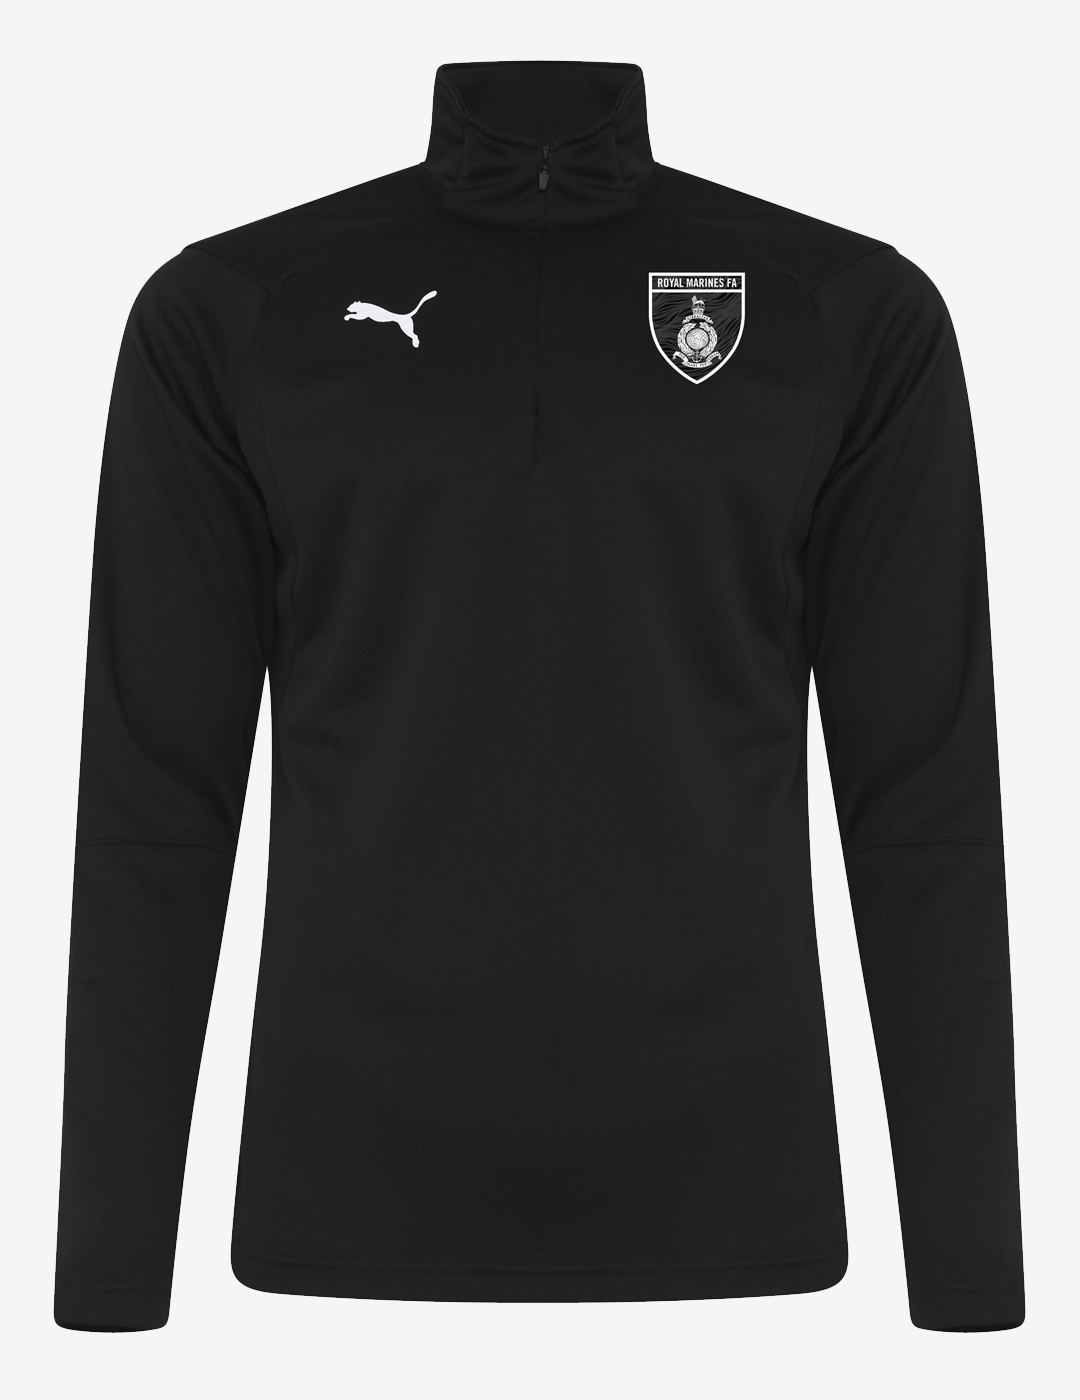 Royal Marines FA PUMA Liga Football ¼ Zip Top - Black